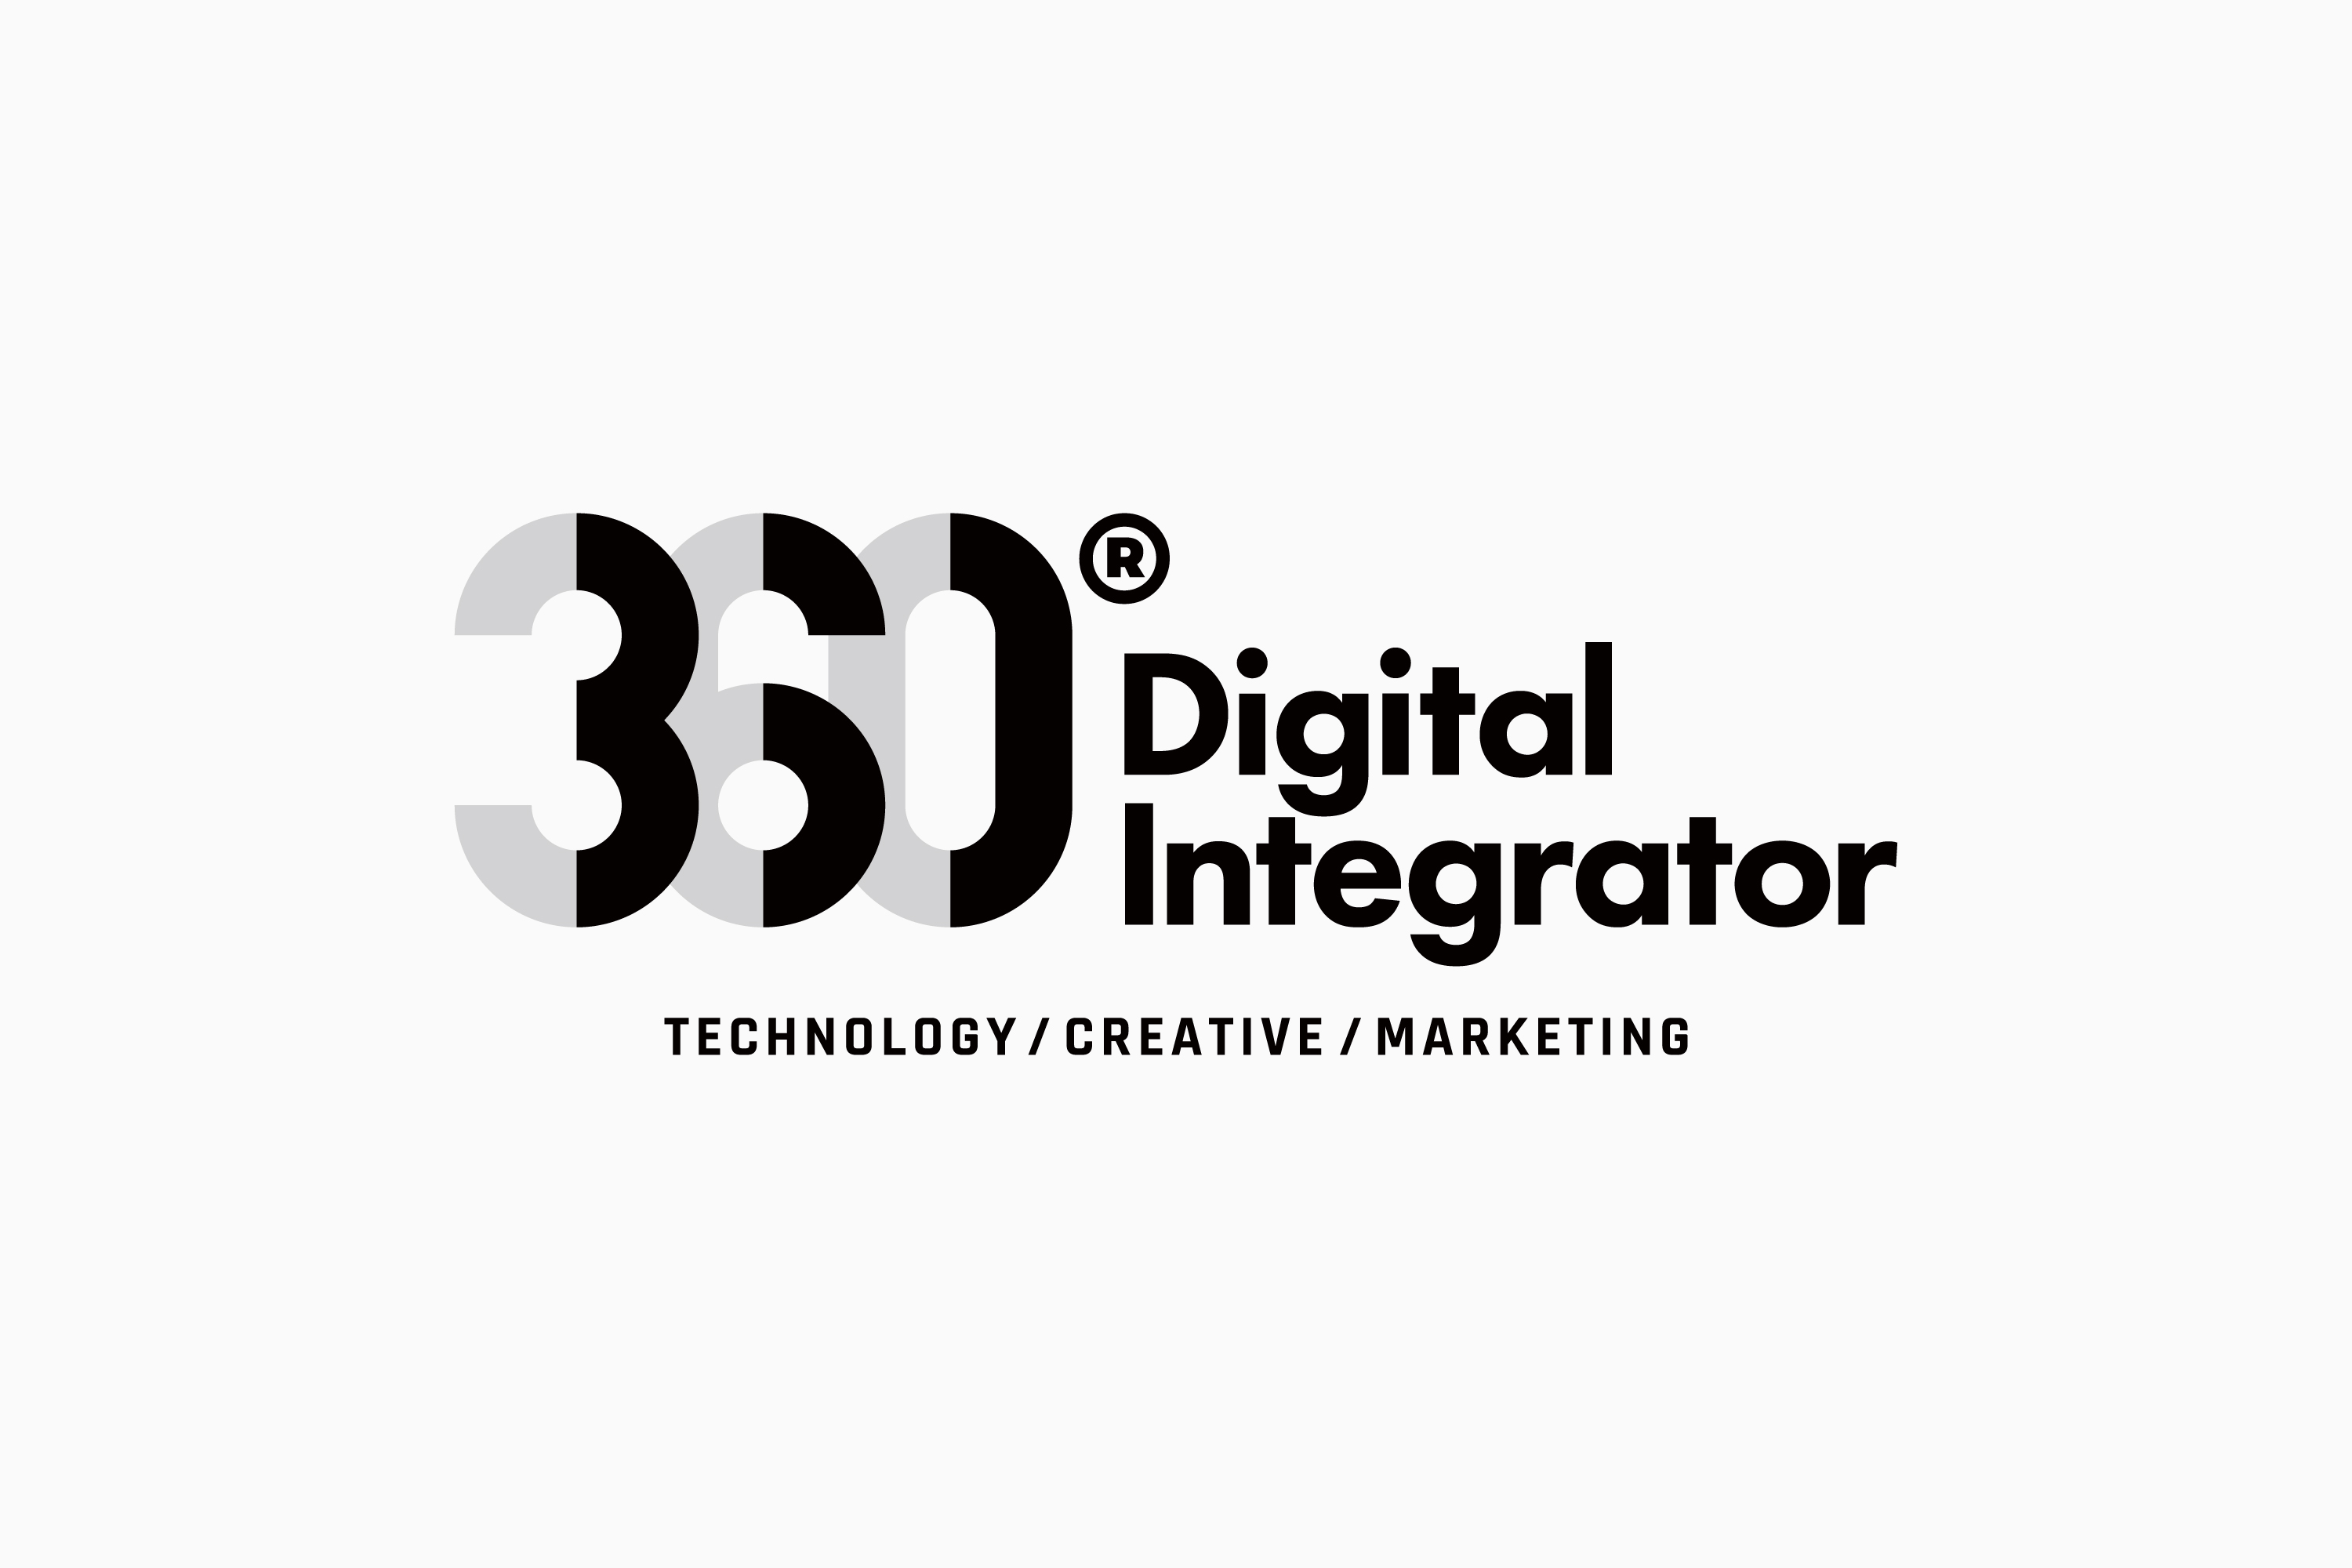 360° Digital Integrator